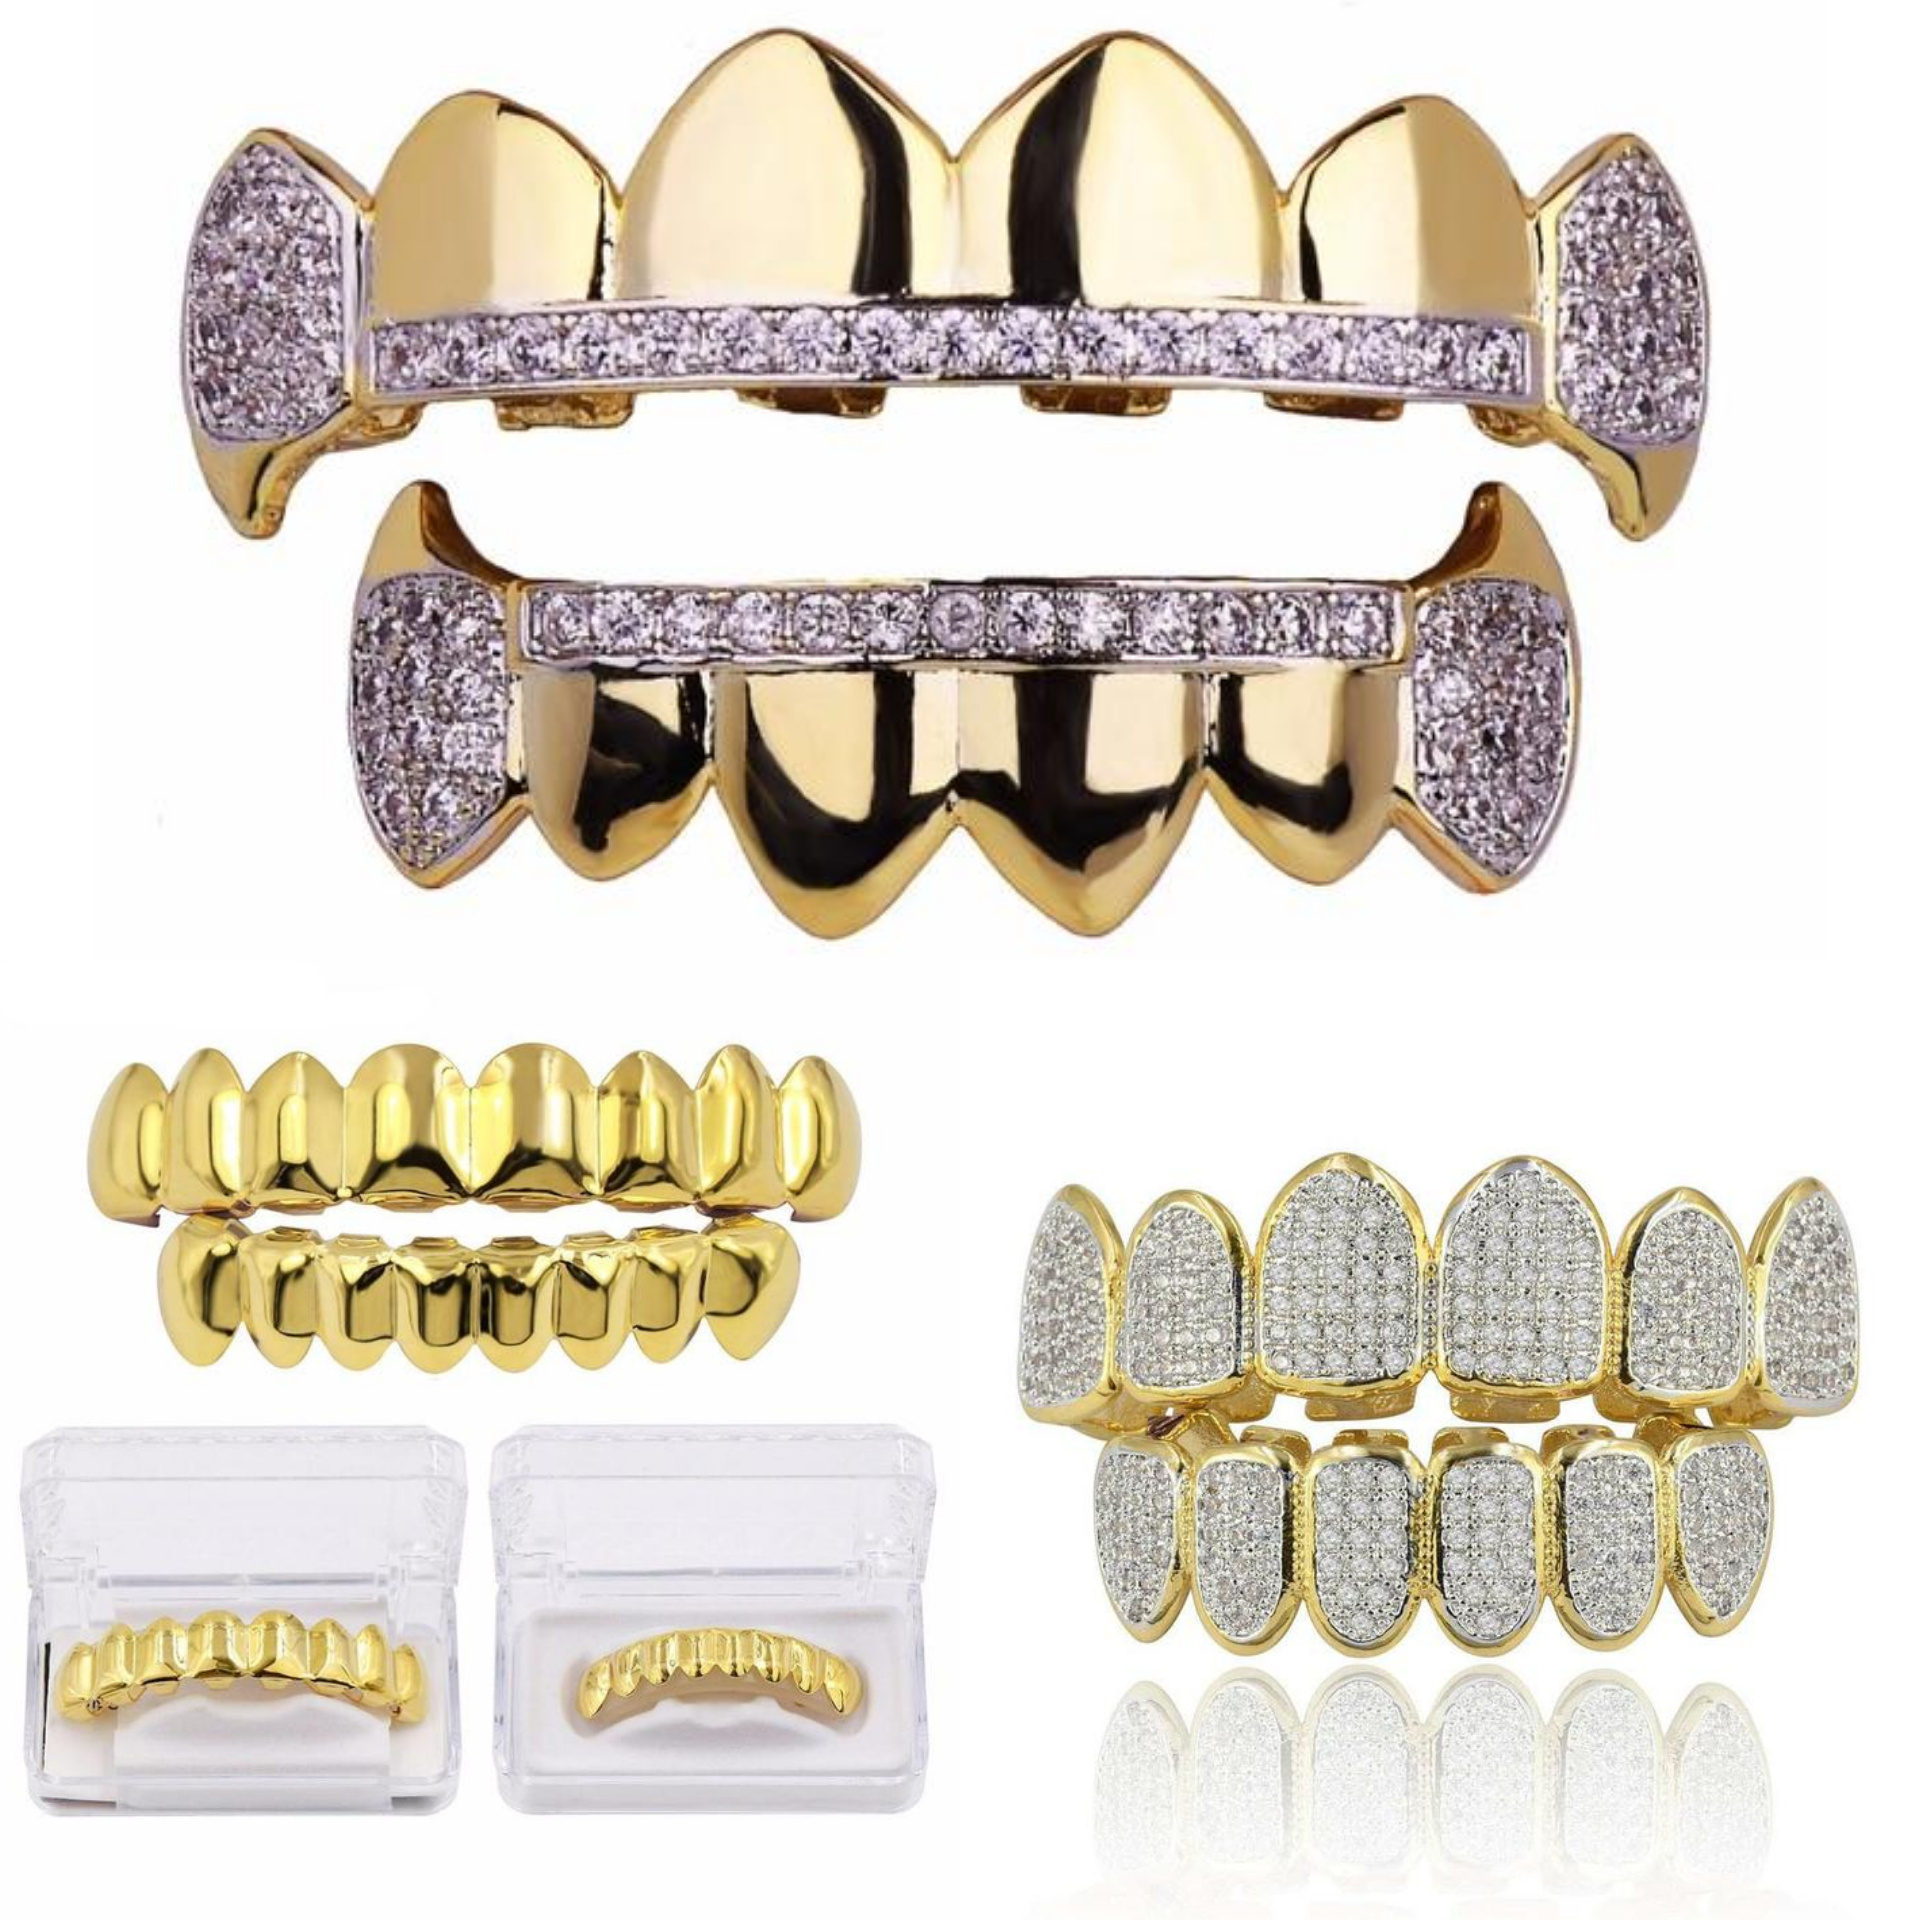 Retrohiphopshop.com  has great prices on Grillz and other Hip-Hop Jewelry